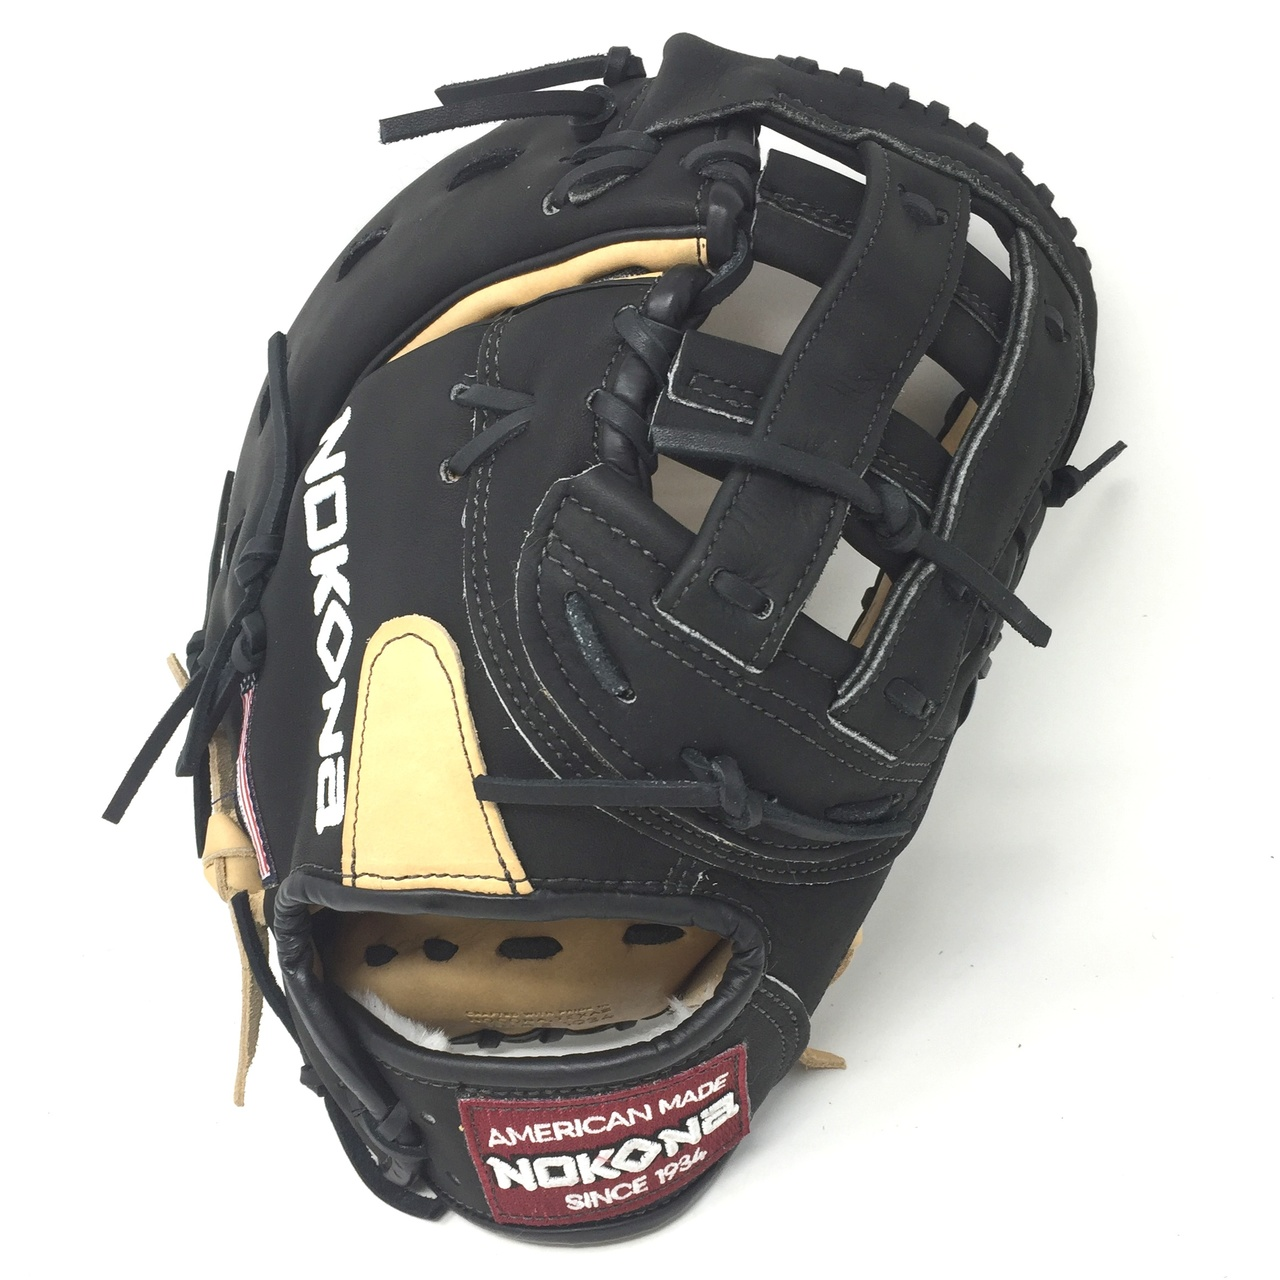 nokona-bison-12-5-black-alpha-first-base-mitt-baseball-glove-s-3hb-right-hand-throw S-3HB-RightHandThrow  808808893349 Young Adult Glove made of American Bison and Supersoft Steerhide leather